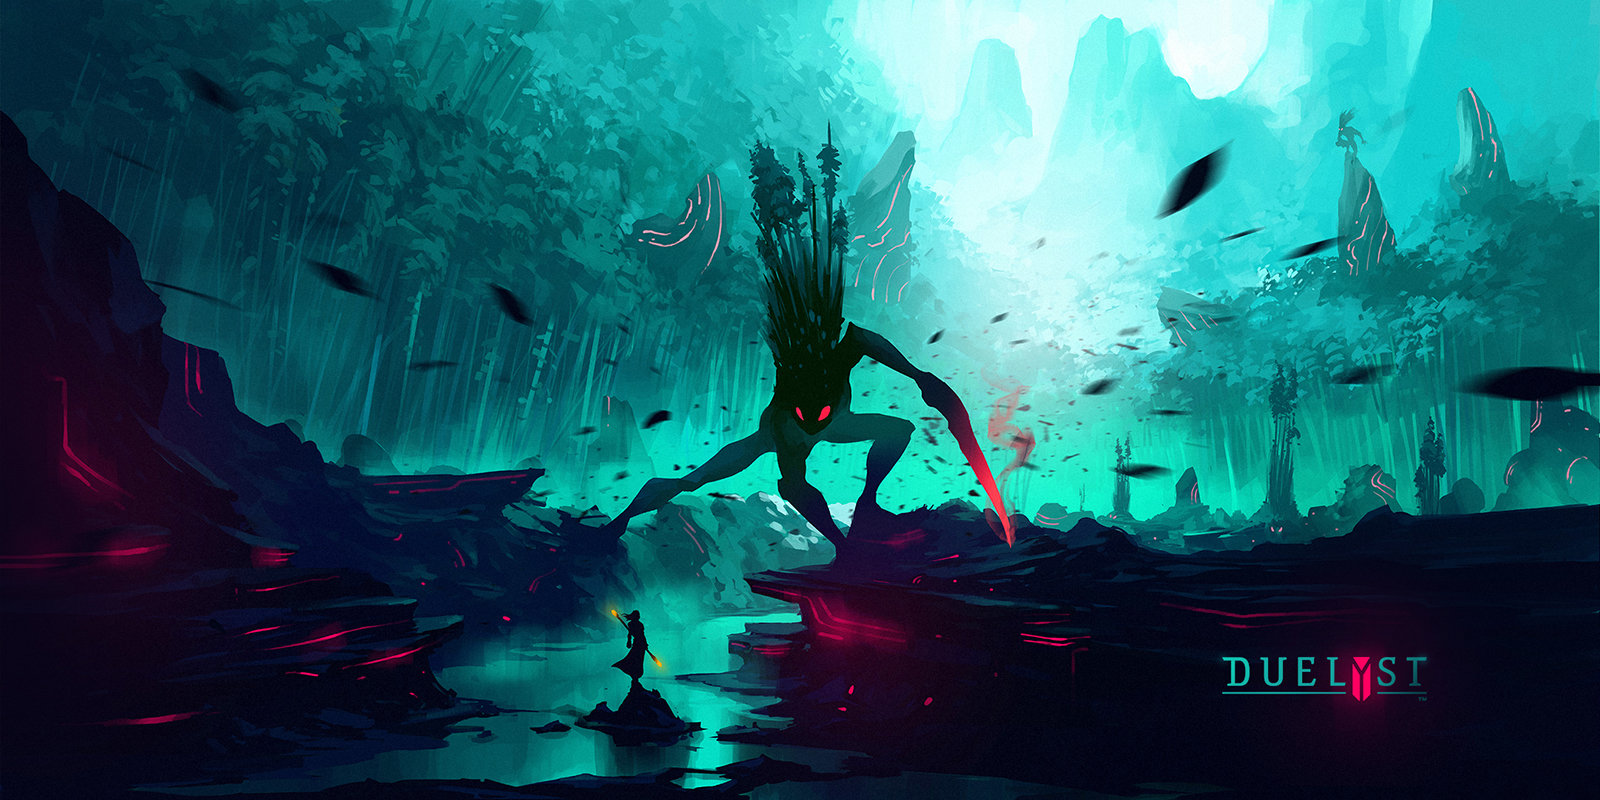 Whistling Blades by Anton Fadeev